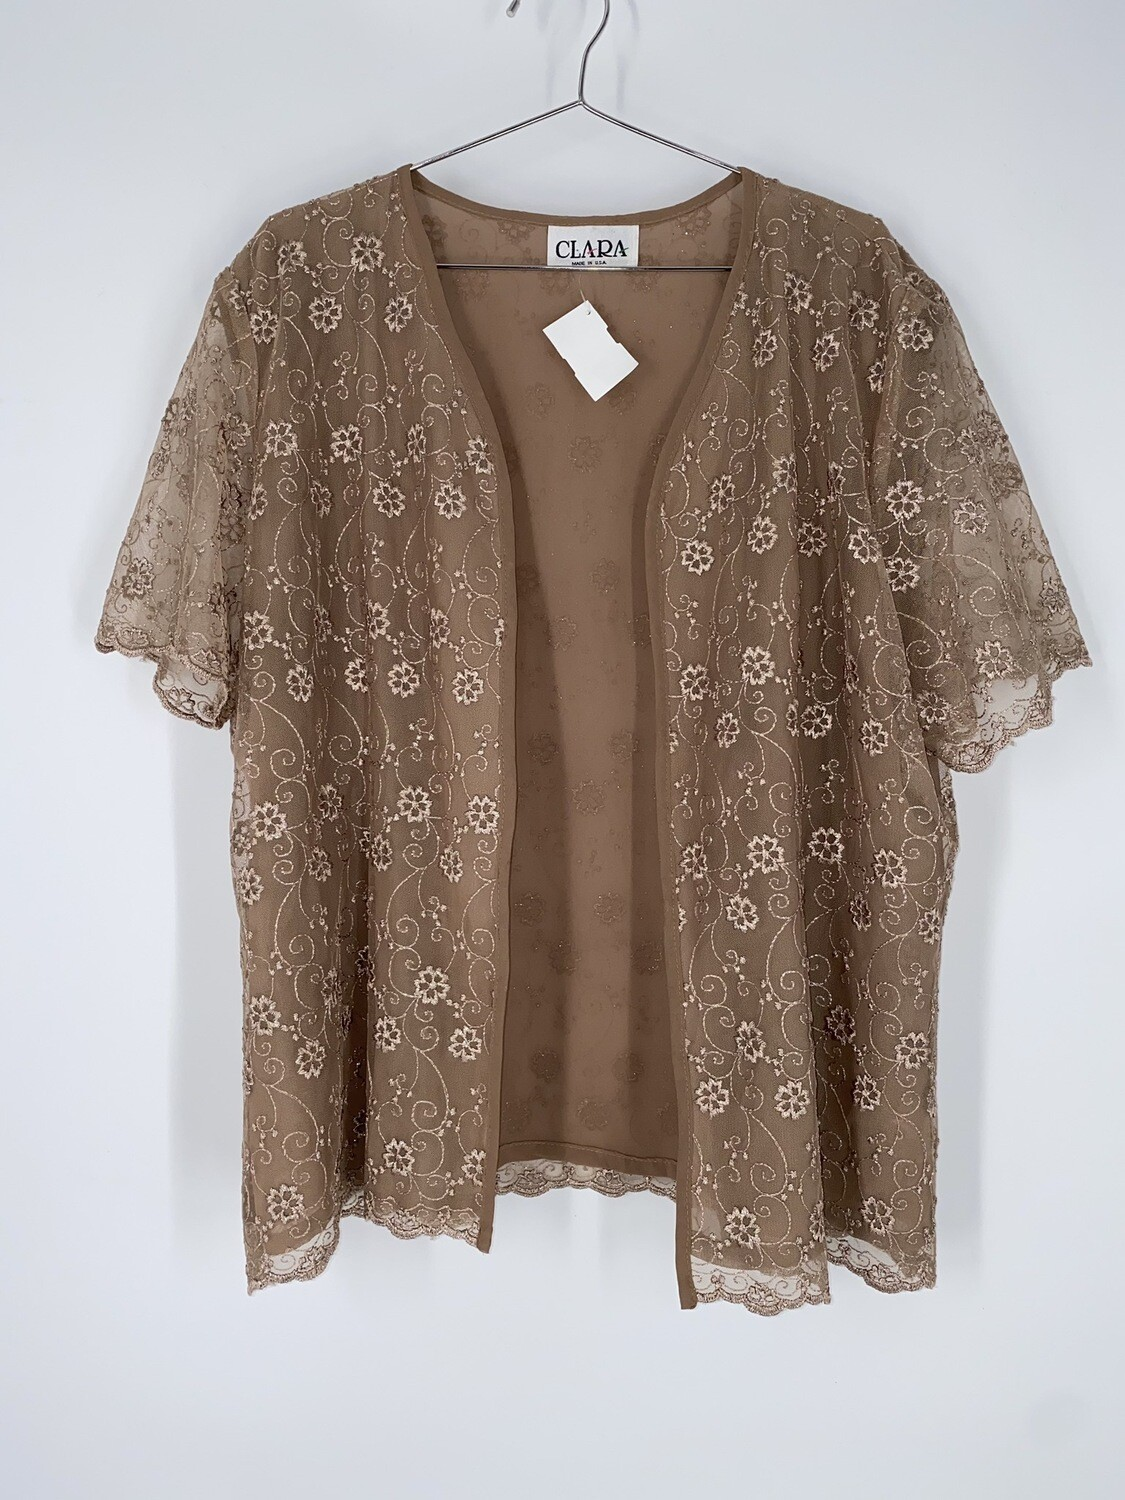 Clara Gold Floral Lace Short Sleeve Top Size L